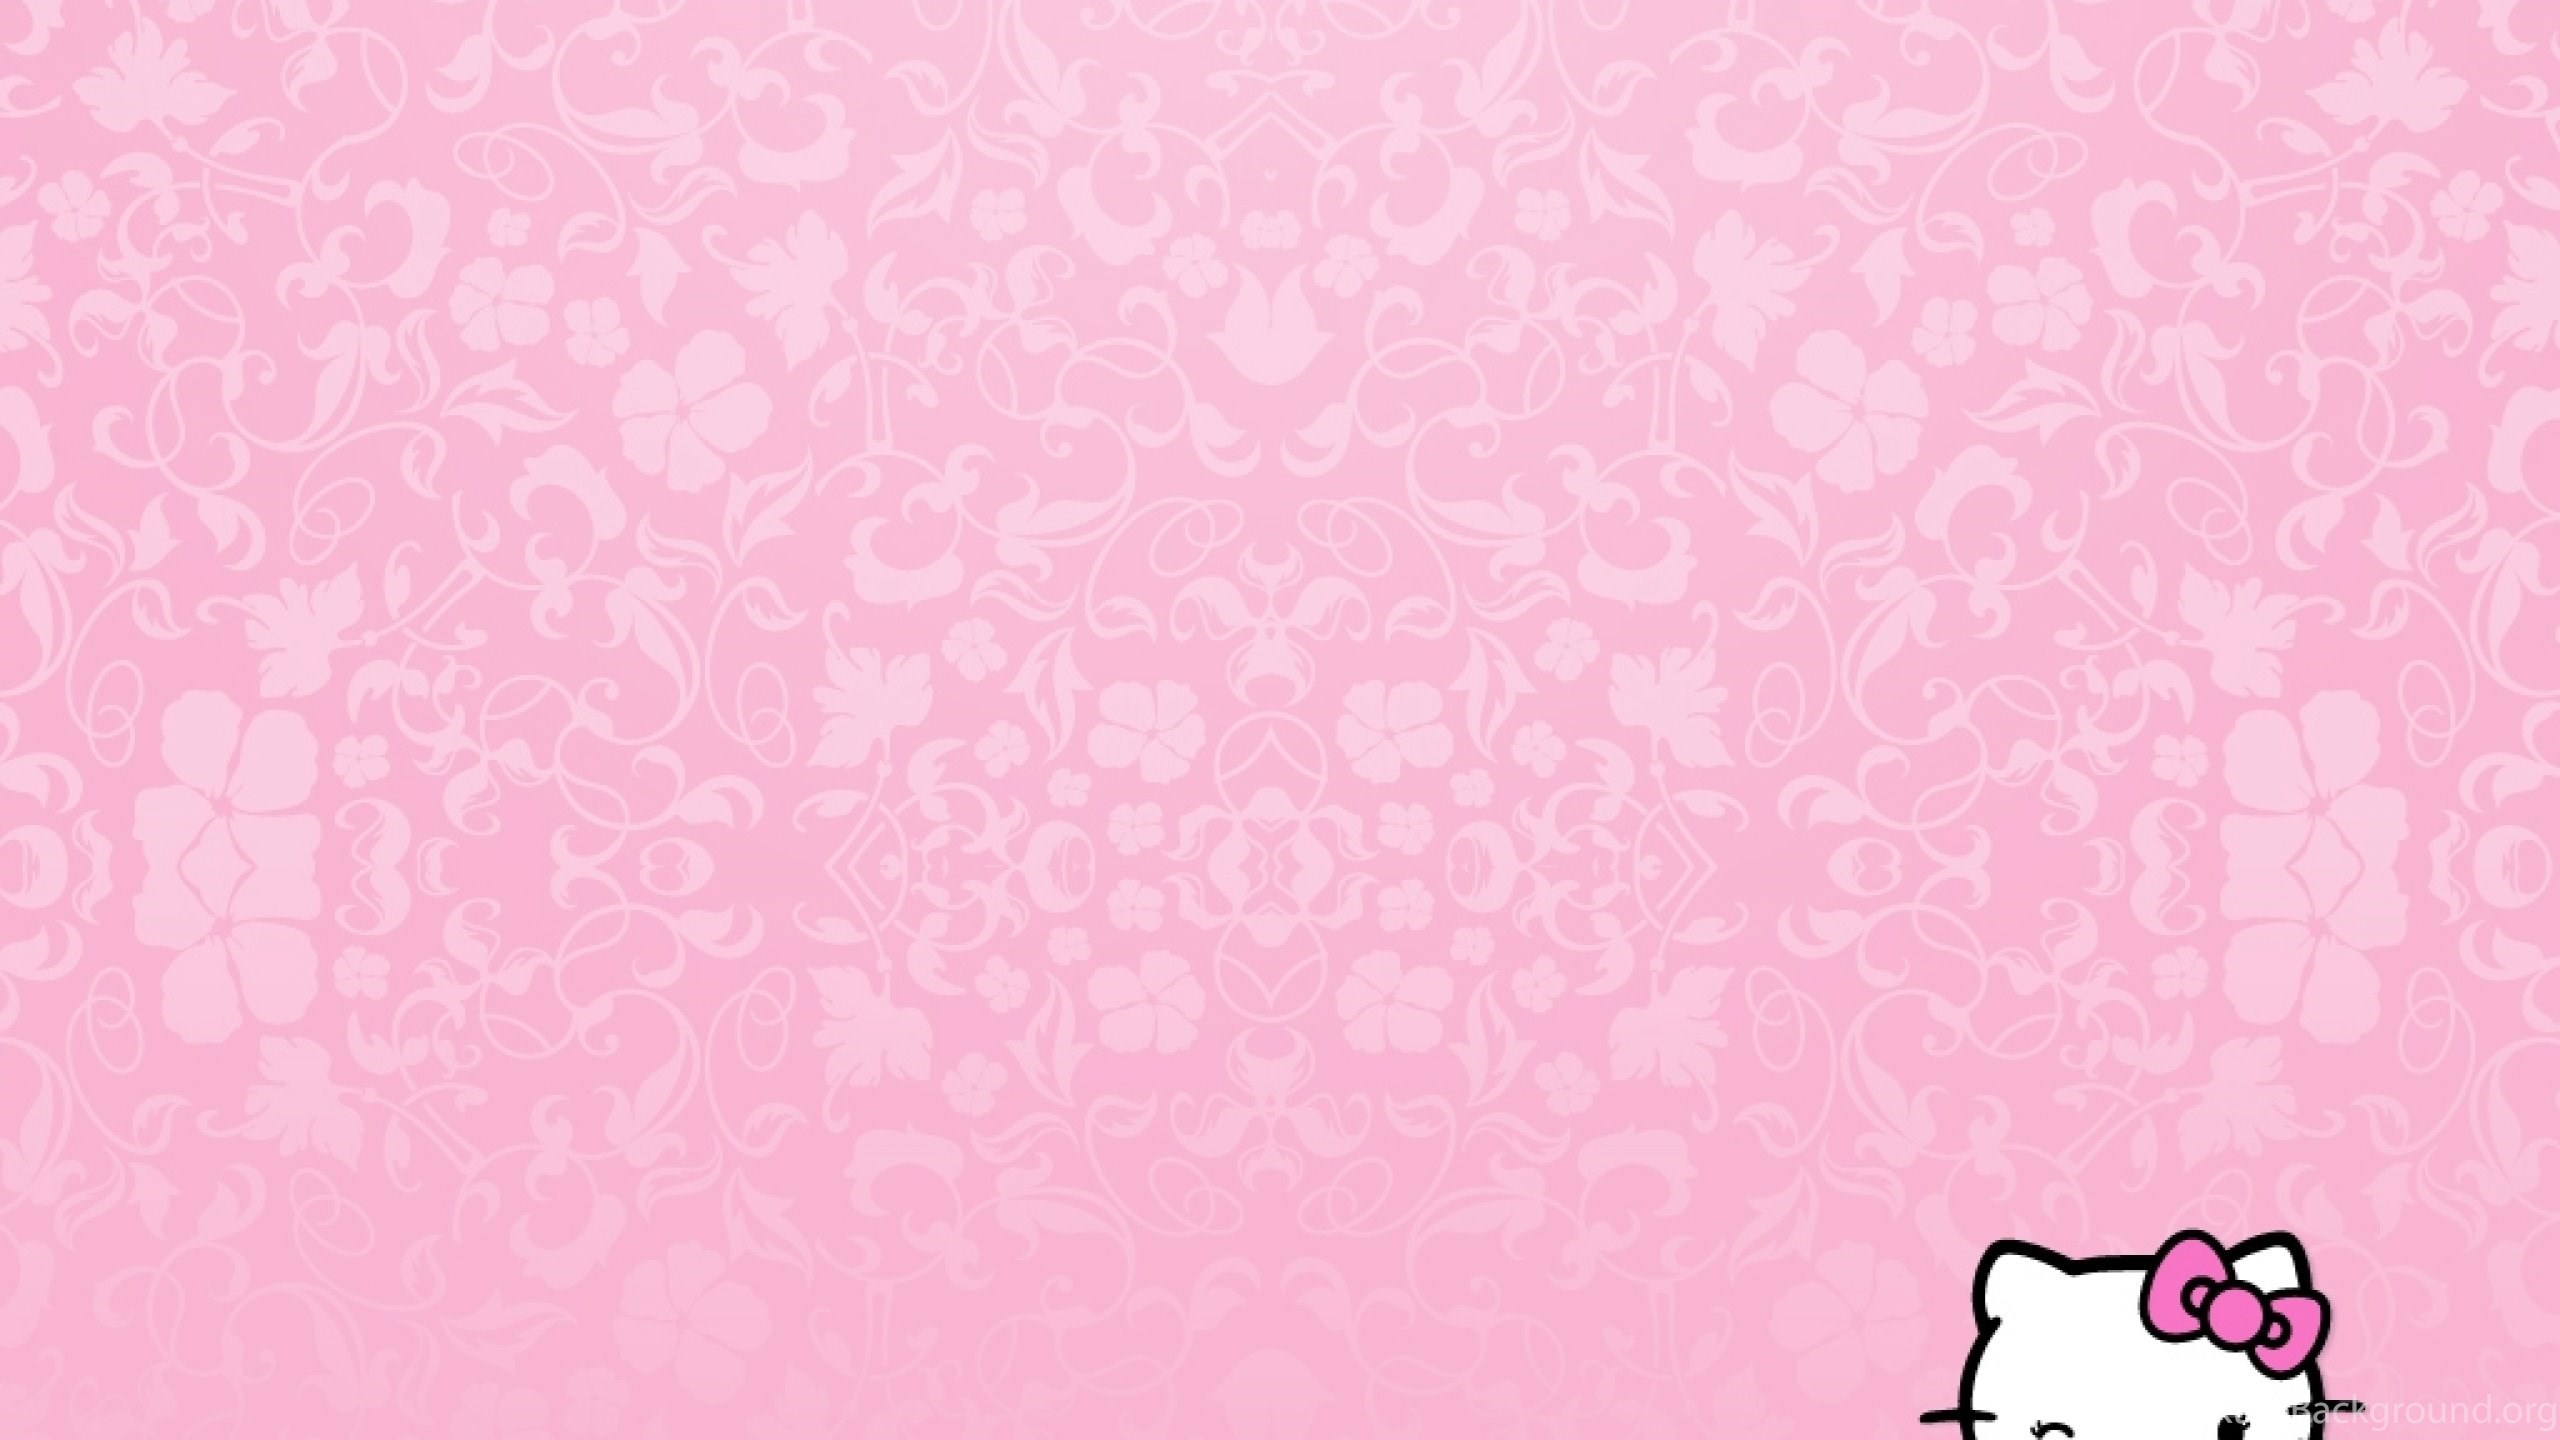 Amazing Wallpaper Hello Kitty Note 3 - 1009705_pink-hello-kitty-backgrounds-wallpapers-zone_2560x1600_h  Trends_68148.jpg